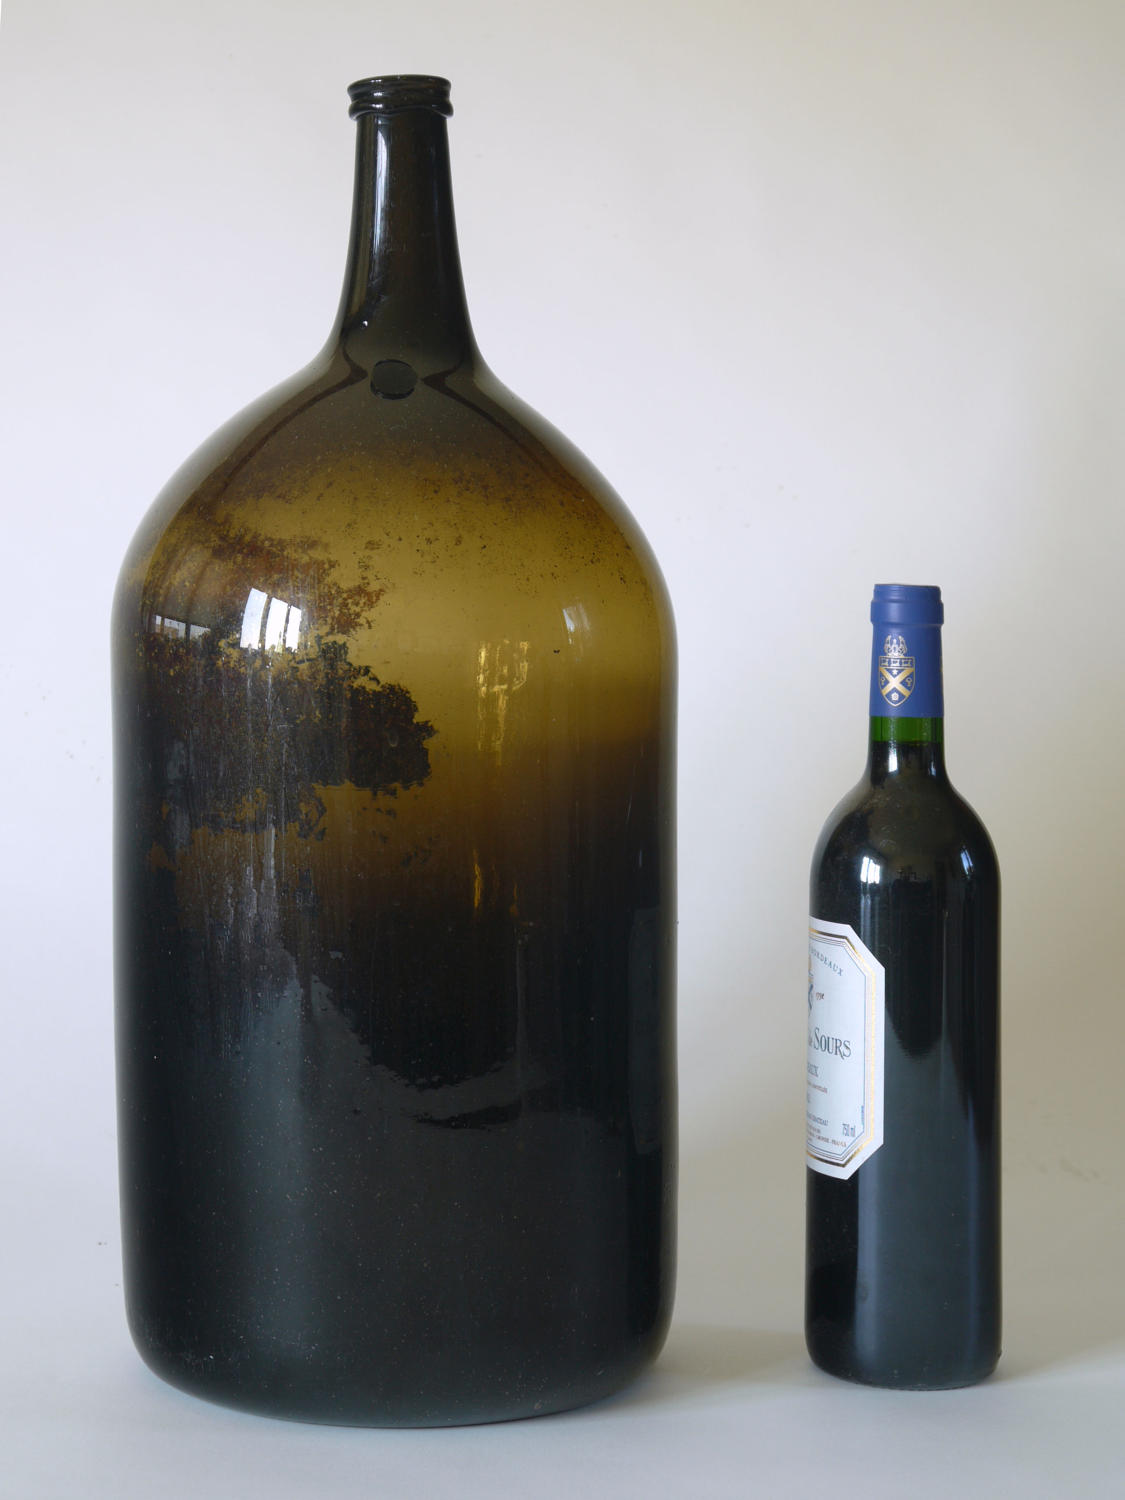 A giant wine bottle